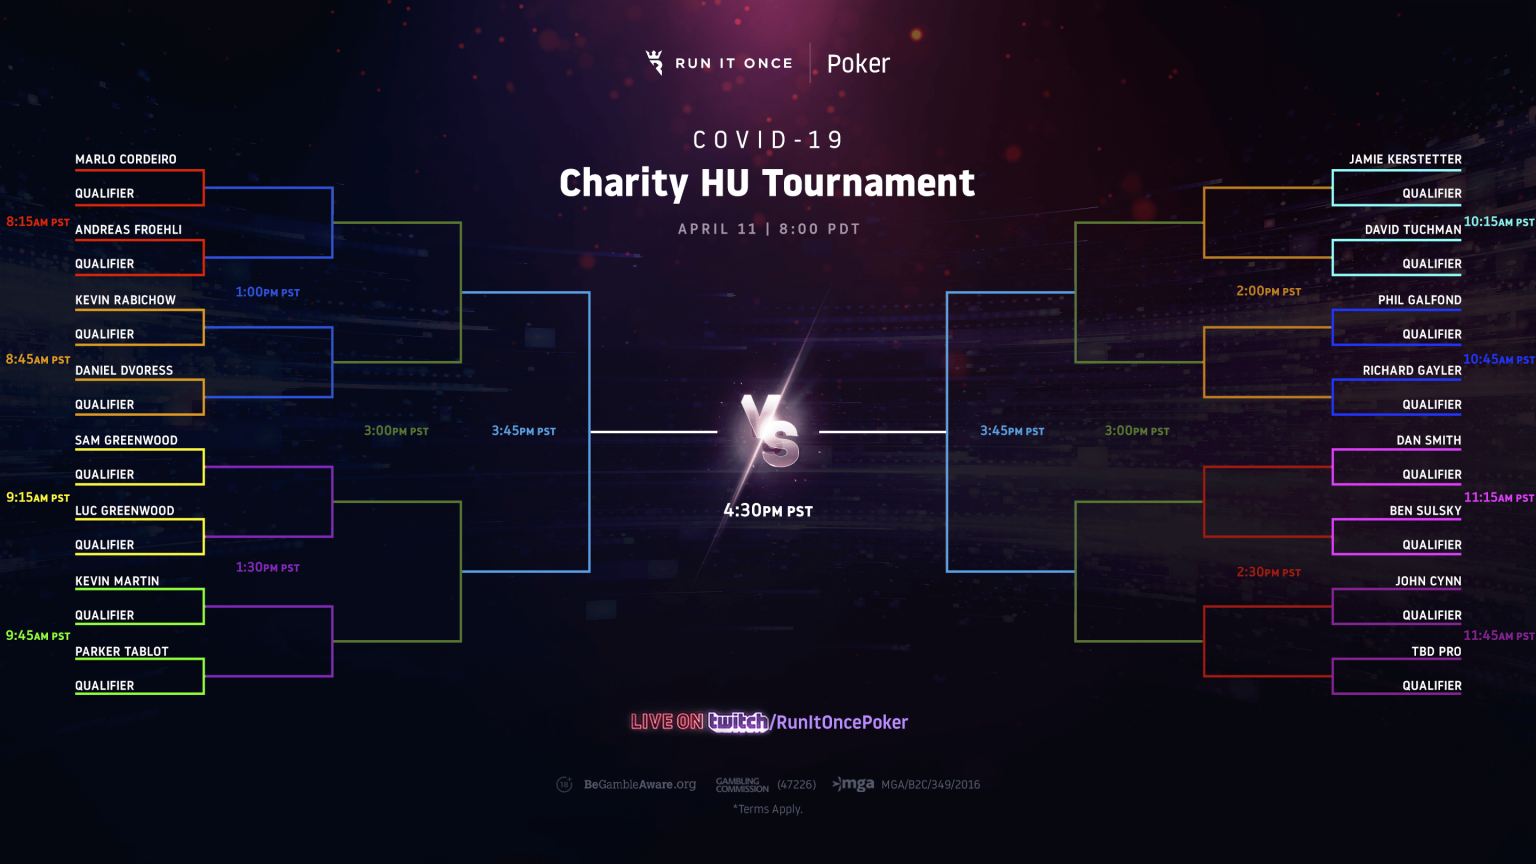 Run It Once charity tournament